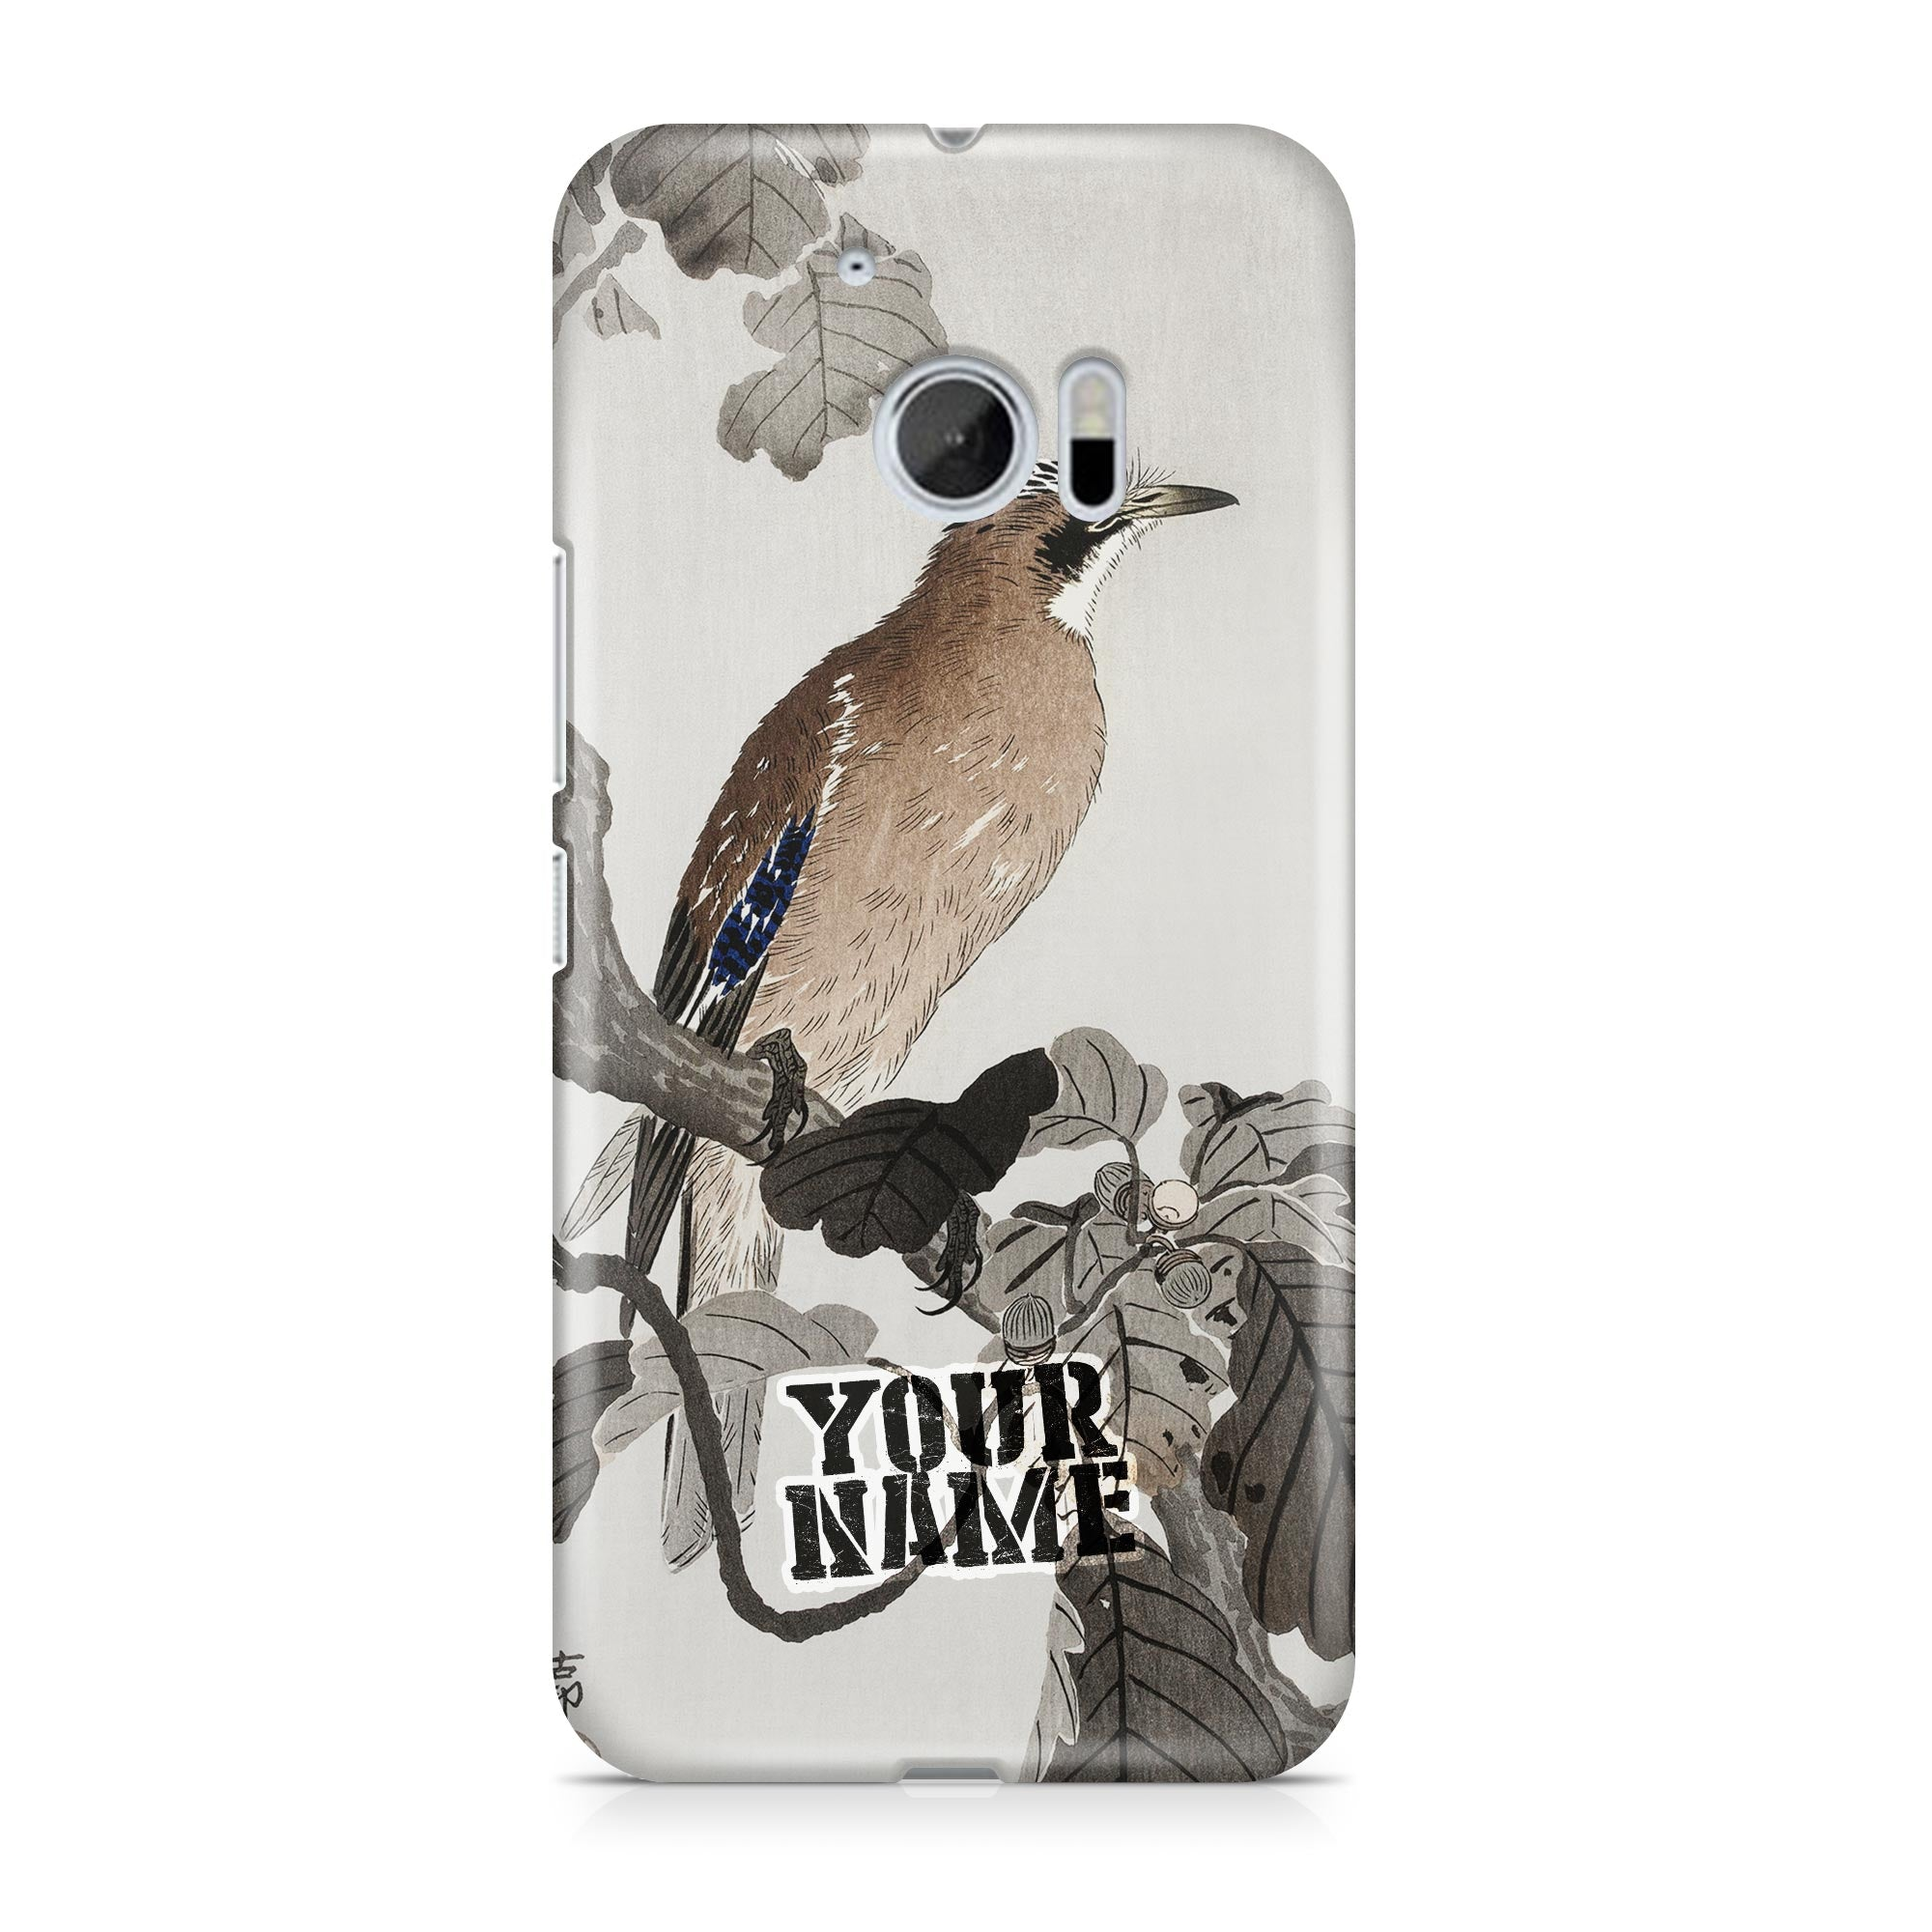 Black Eagle Hawk Birds Japanese Artwork Phone Cases Cover